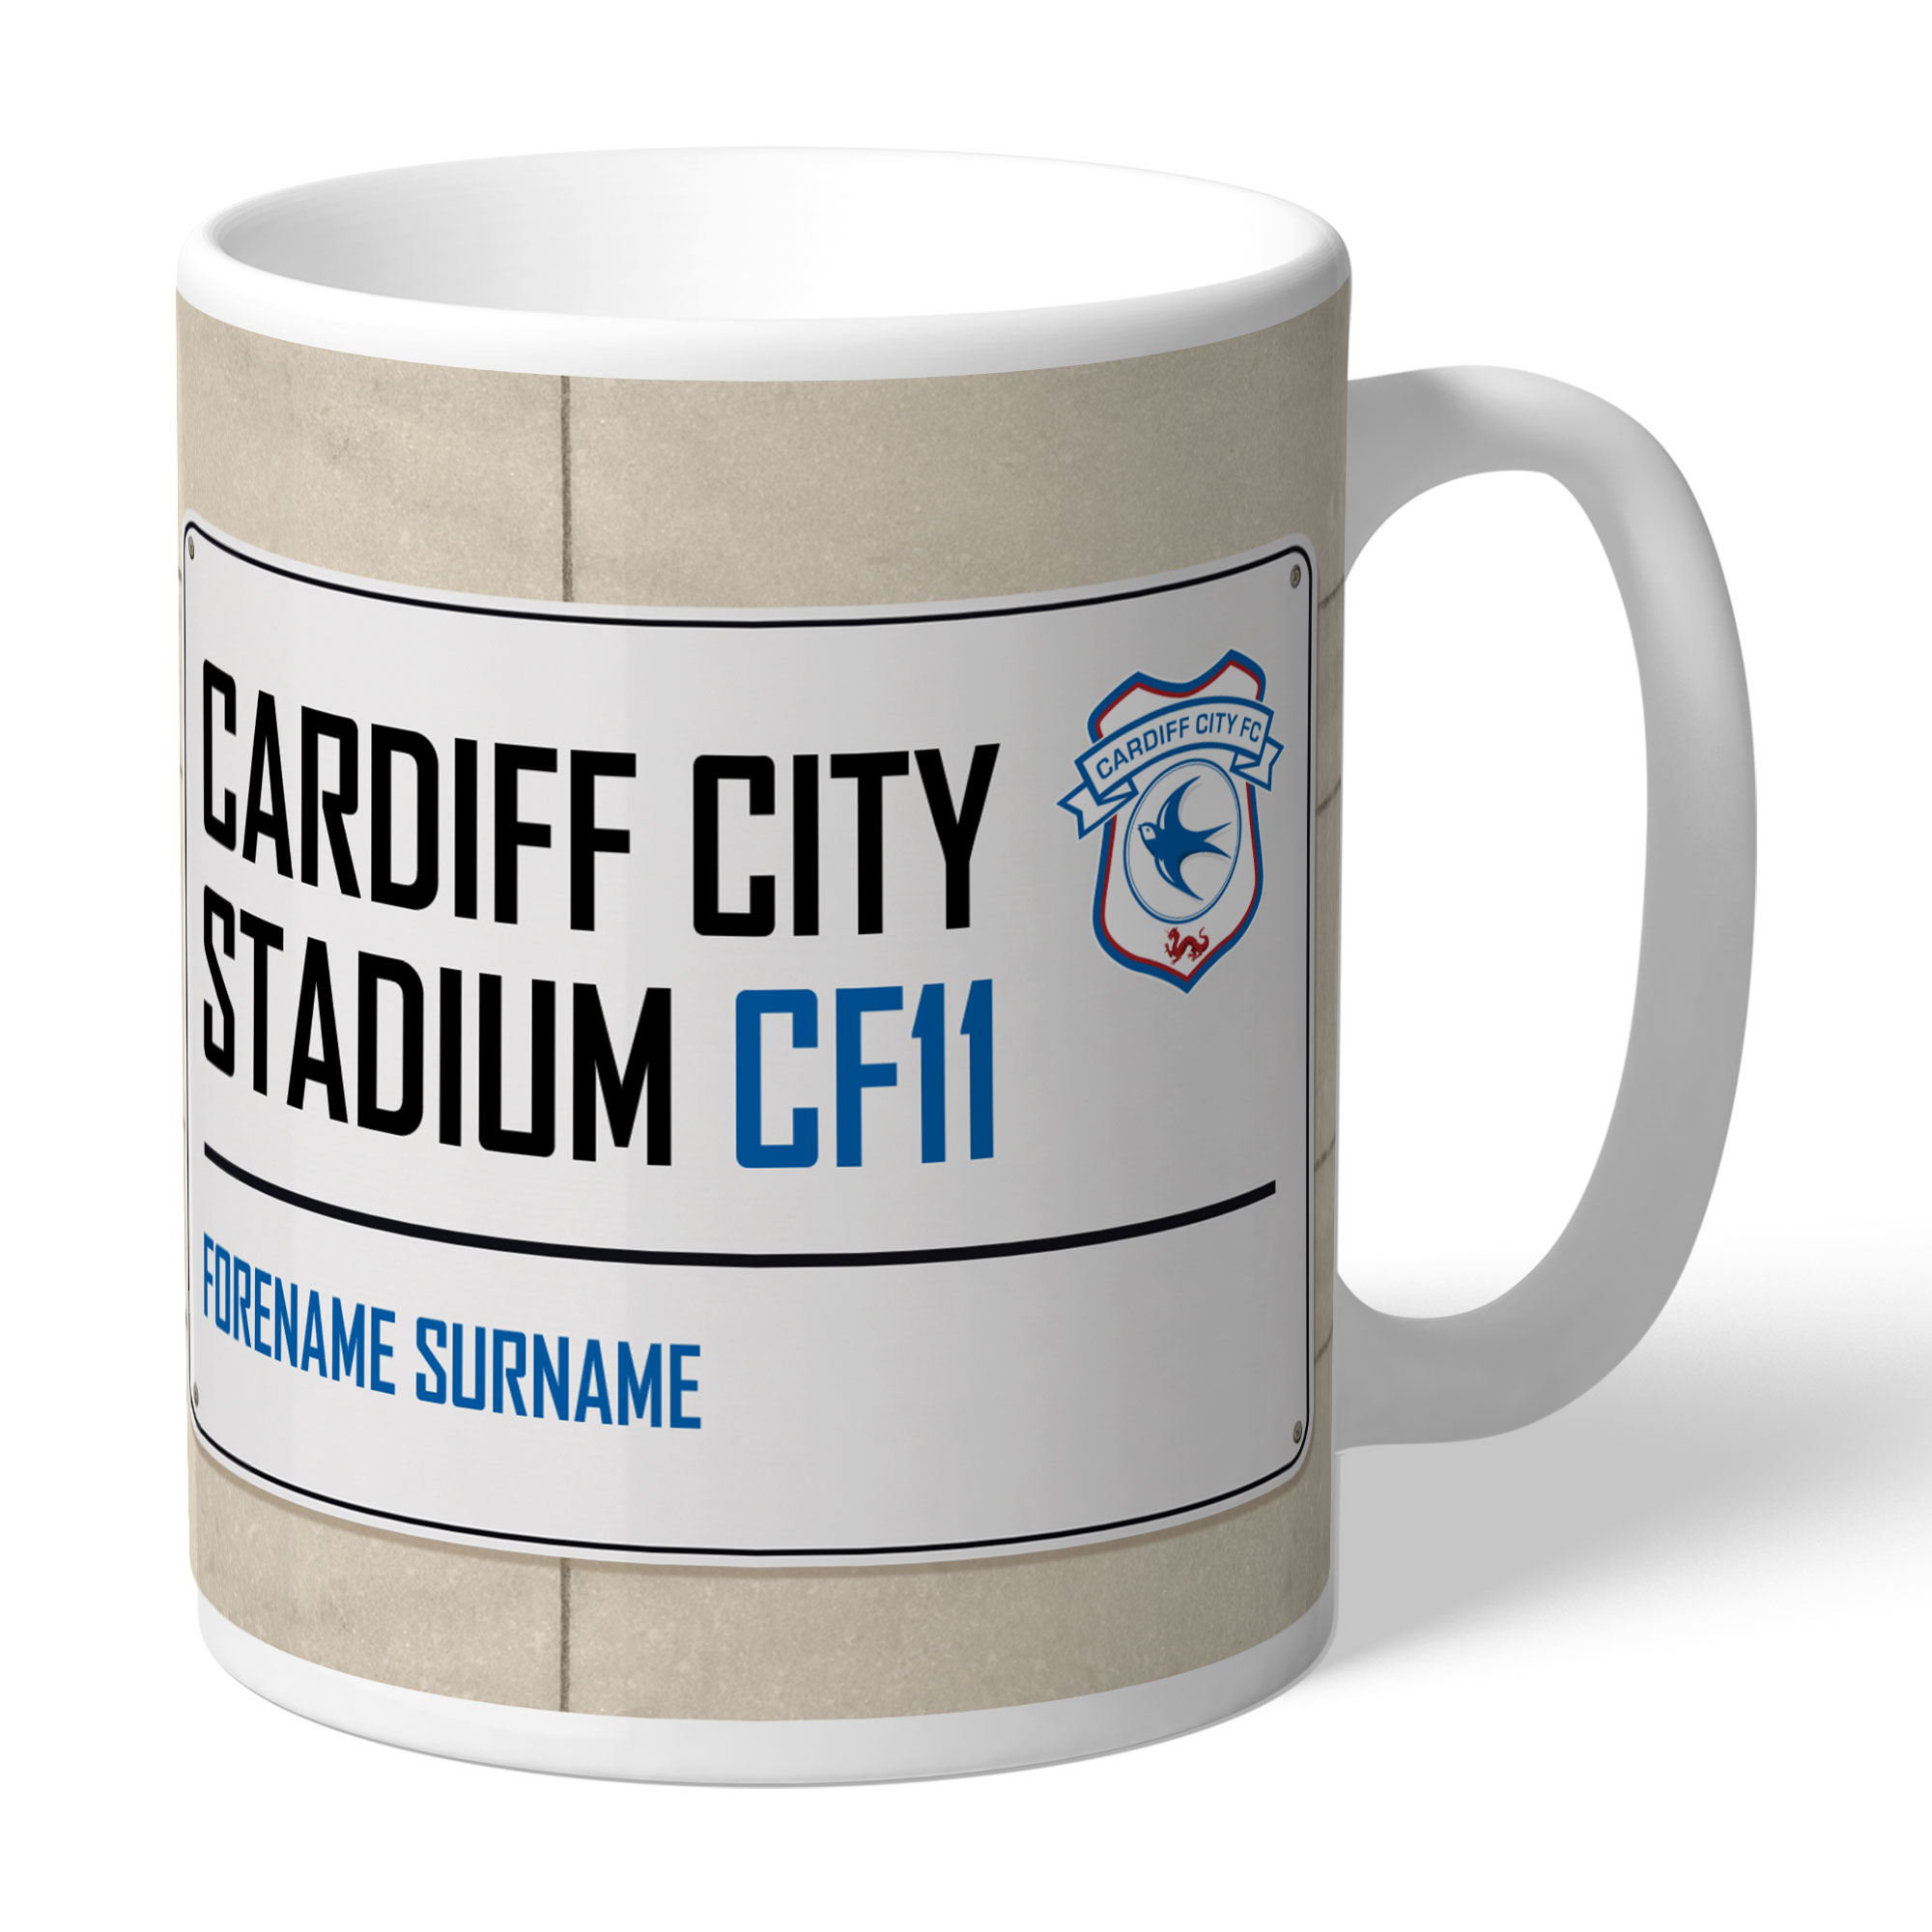 Cardiff City FC Street Sign Mug